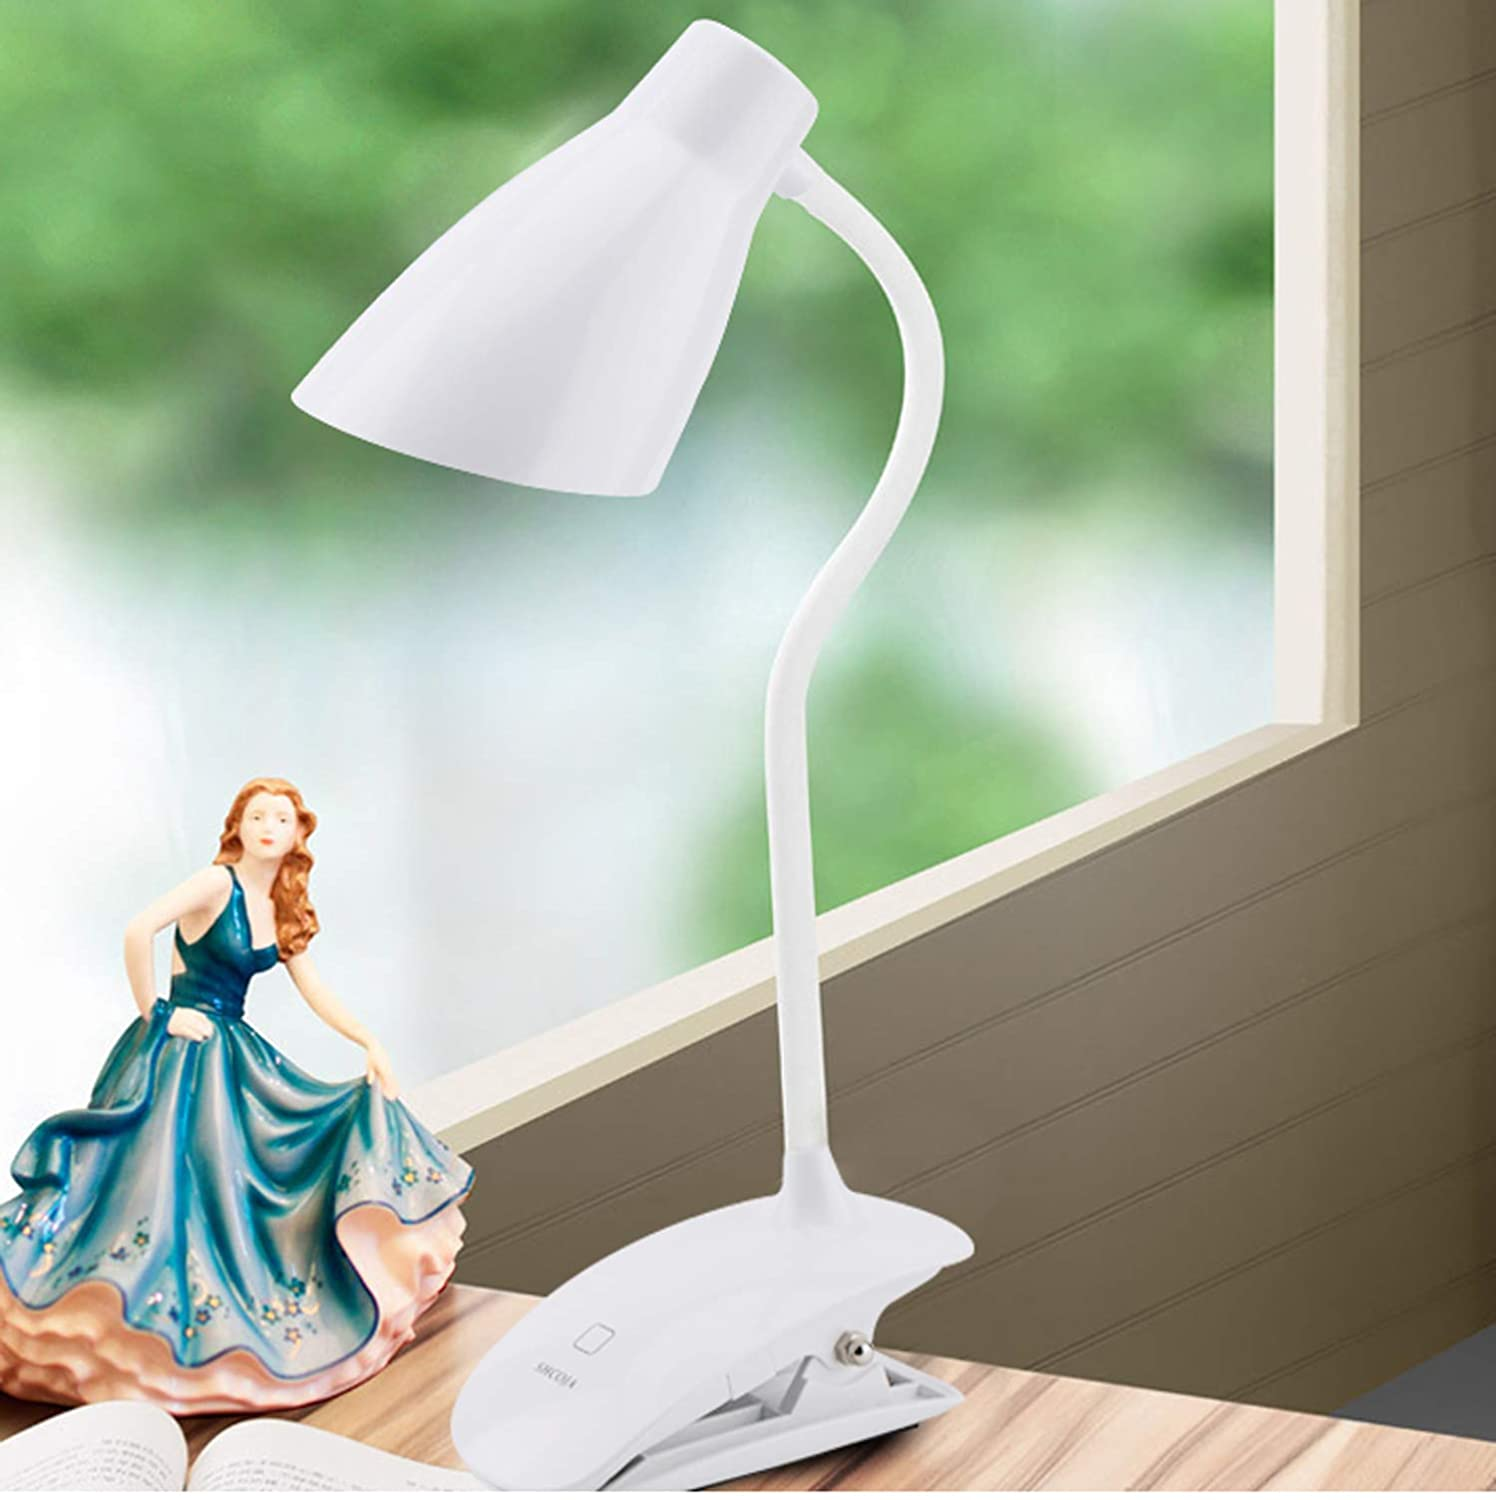 LED Clip on Light, Clip Lamp with 3-Level Dimmer/Touch Switch for Desk,Table,Bed,Headboard,Computer, 5500-6000k Adjustable Rechargeable Reading Book lamp for Bookworms & Kids & Students,White-4 SHCOJA